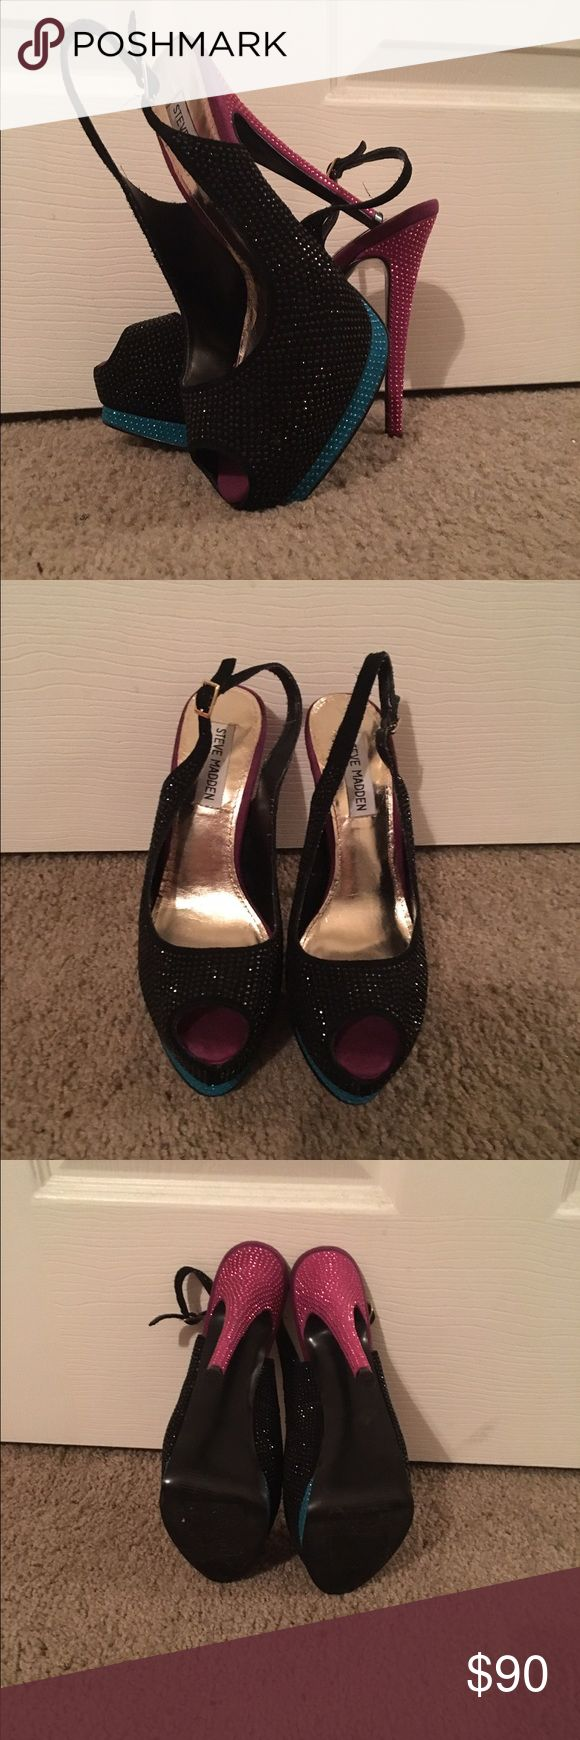 Steve Madden gem sling back heels Gorgeous Steve Madden sling back heels. Black, blue and a pink/purple. A few gems are missing, not even remotely noticeable. The strap is a black frayed material. Any questions just ask! Make me an offer  Steve Madden Shoes Heels